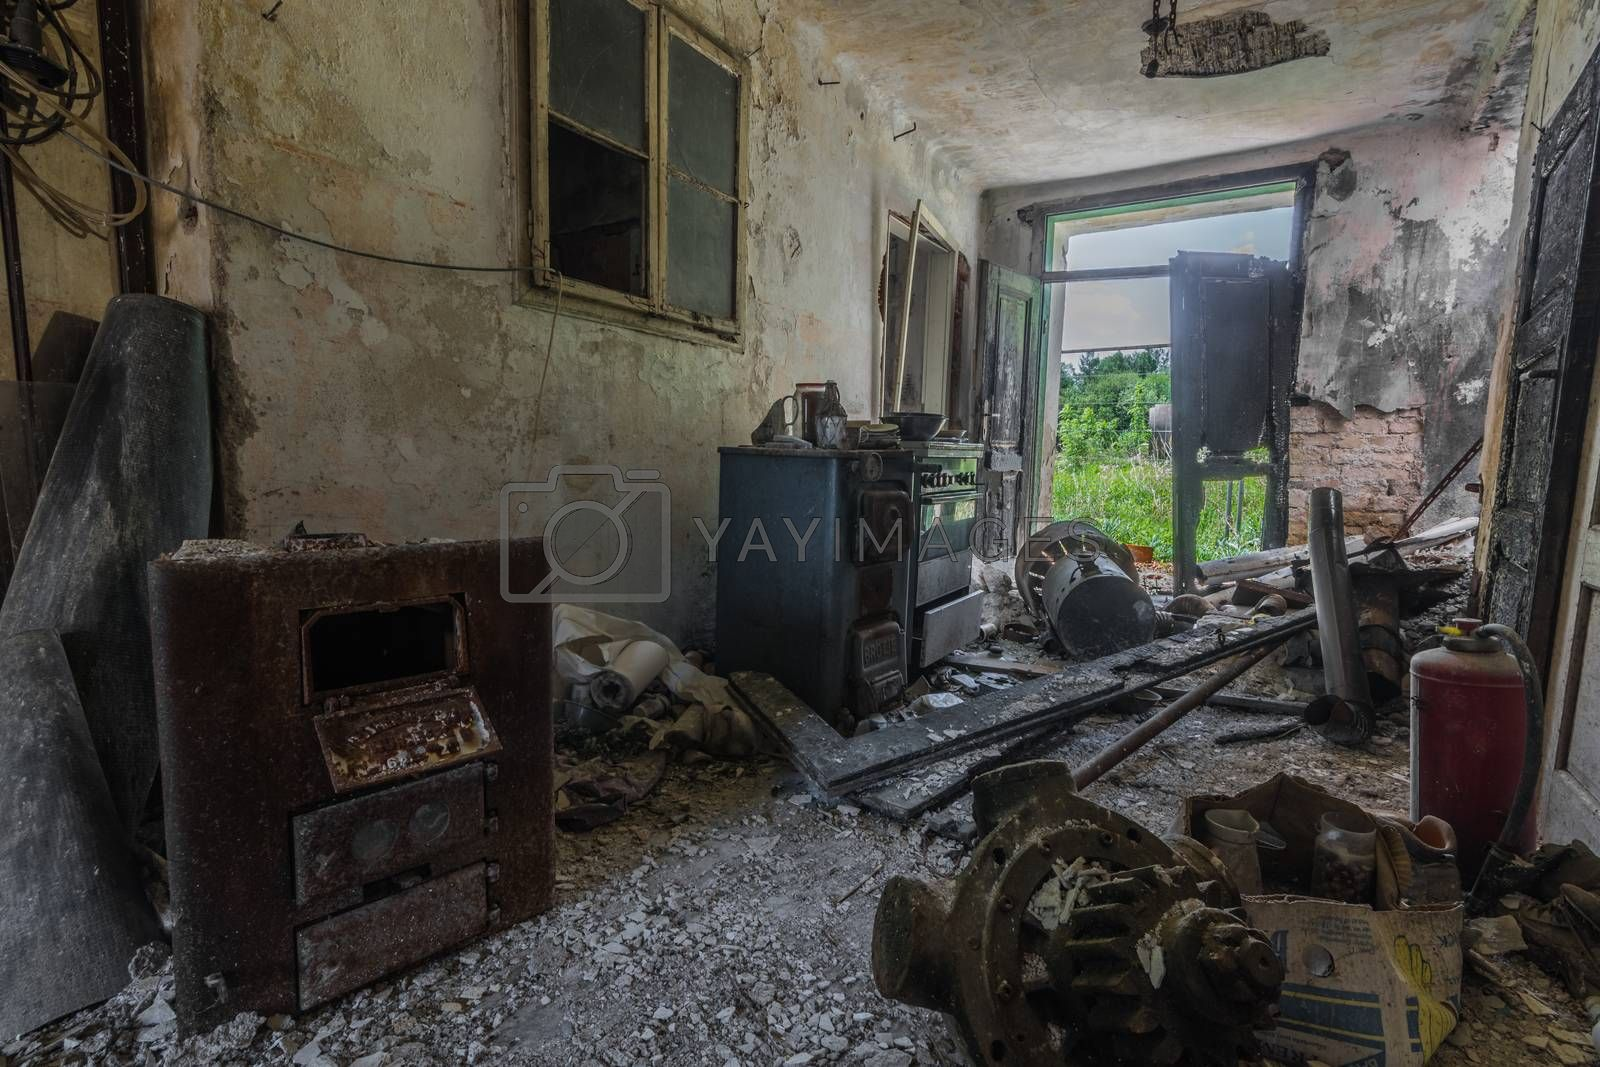 open room with objects in an old house